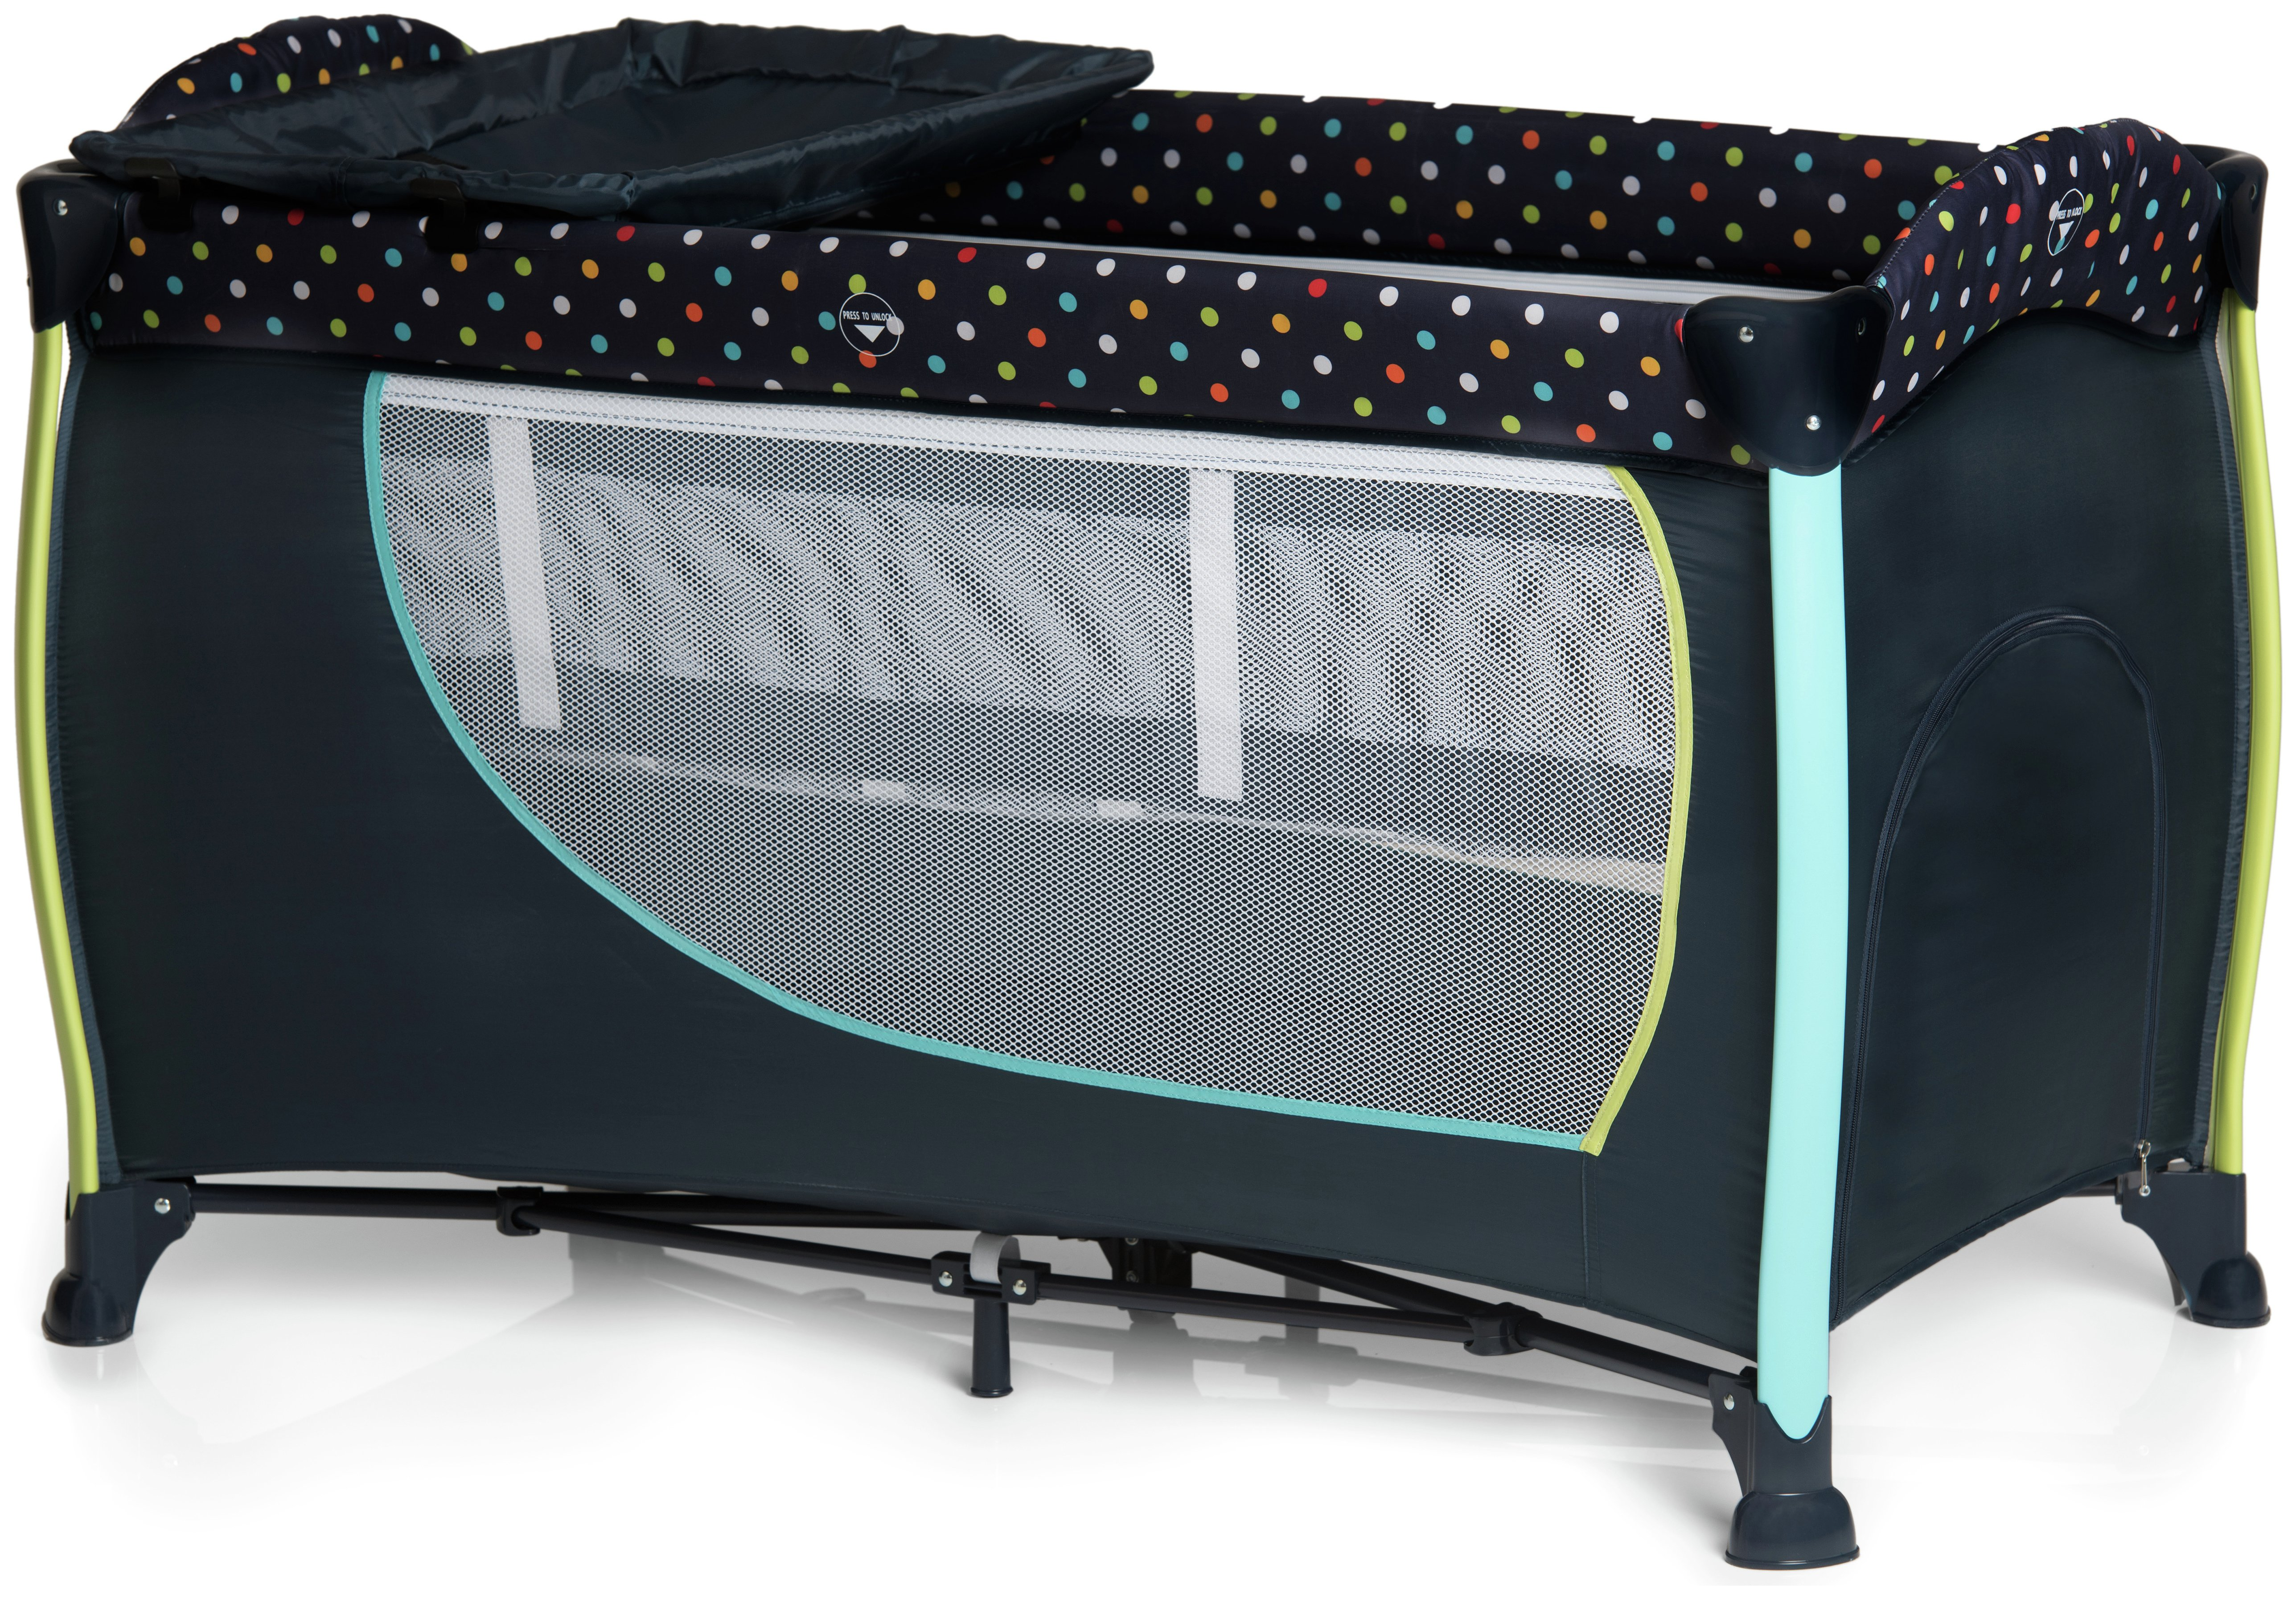 Image of Hauck Sleep 'n' Play Center 2 Multidots Travel Cot